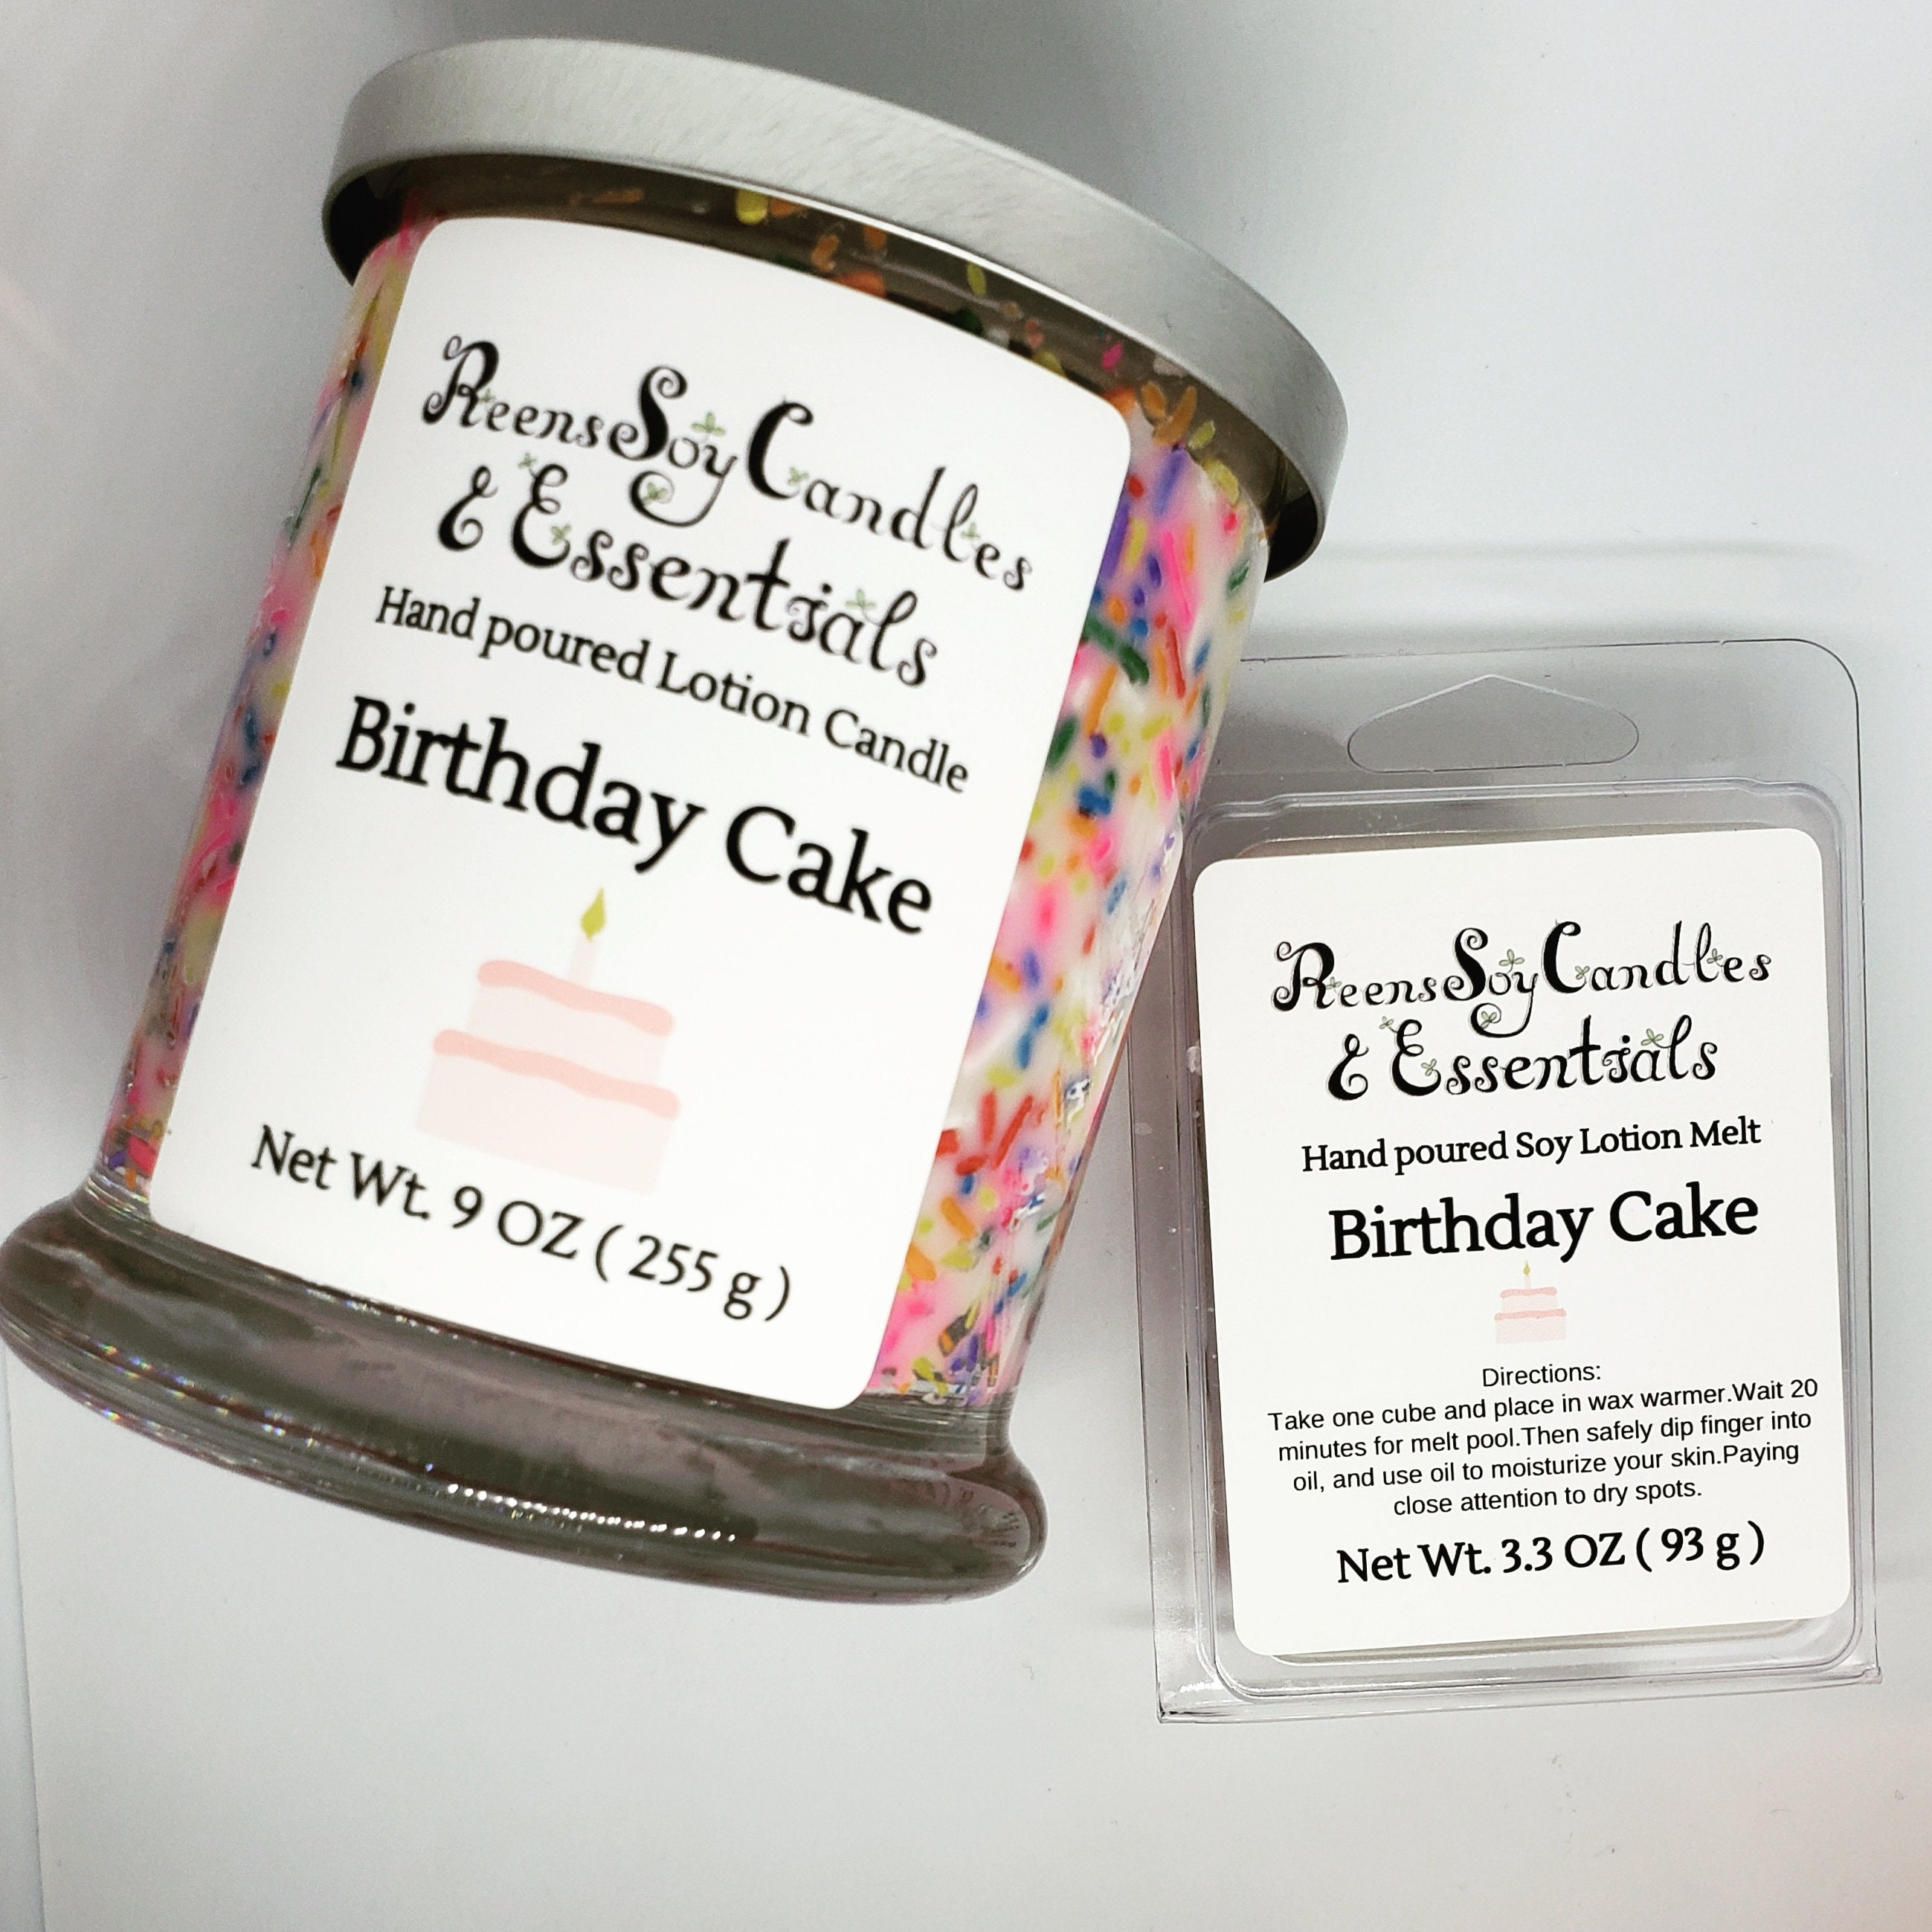 Limited Edition Birthday Cake Soy Lotion Candle 1